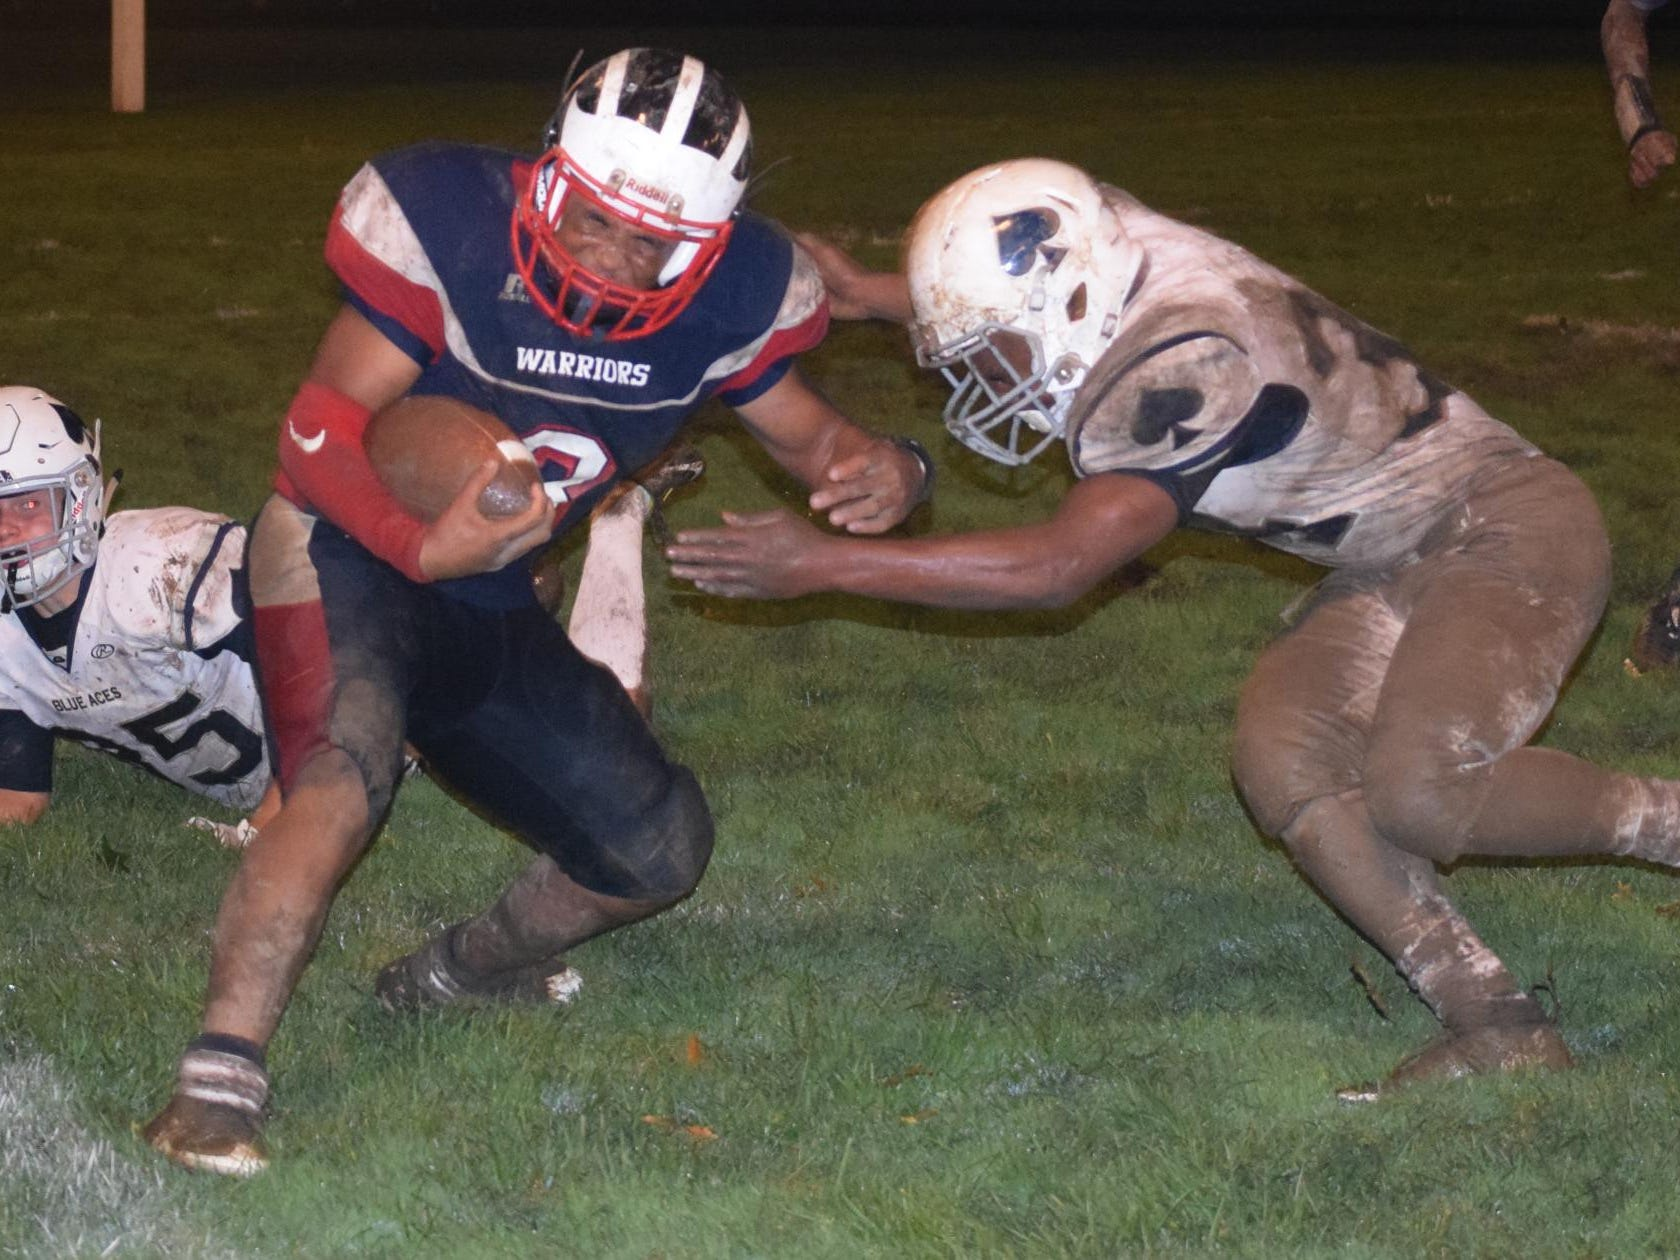 Granville defensive back Thomas McGrath drives Eastmoor Academy's Daylin Jackson out of bounds on a punt return.